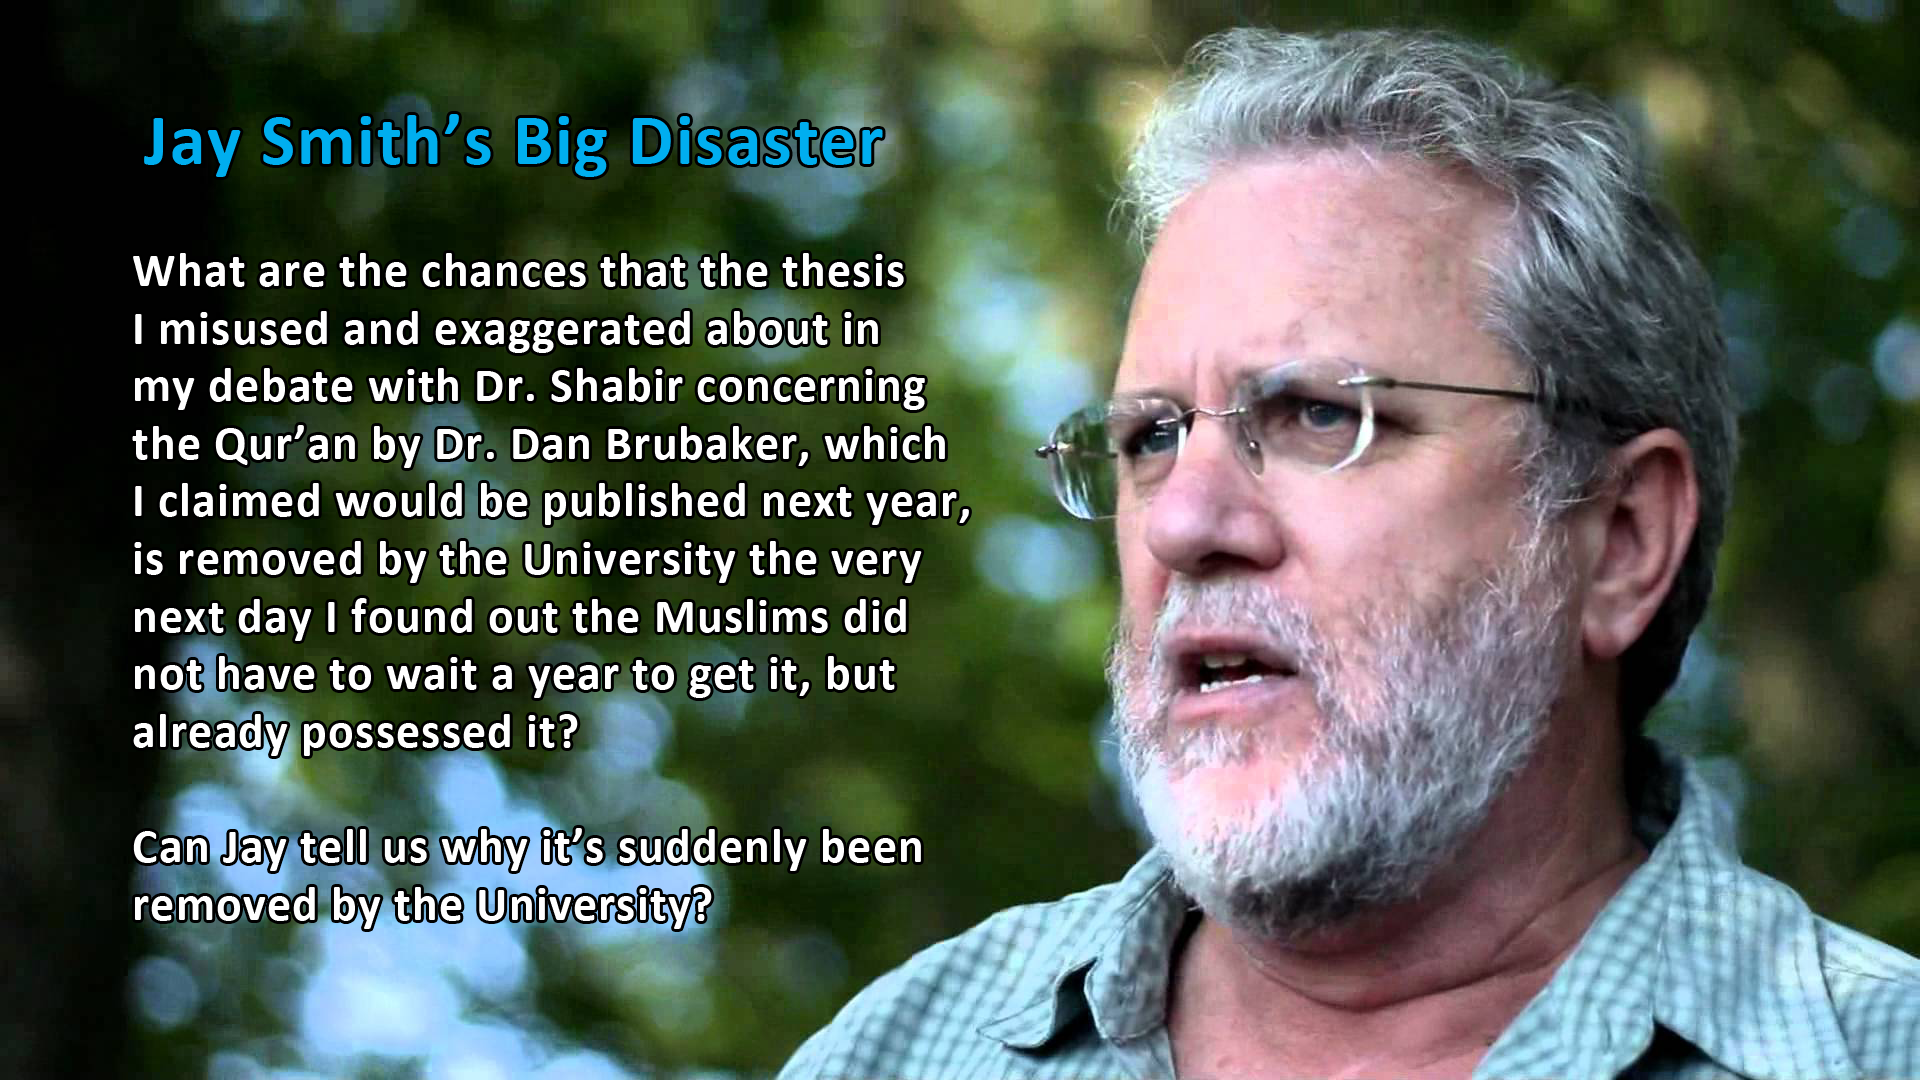 jay muslim Information about jay smith, a christian who regularly debates islamic scholars.